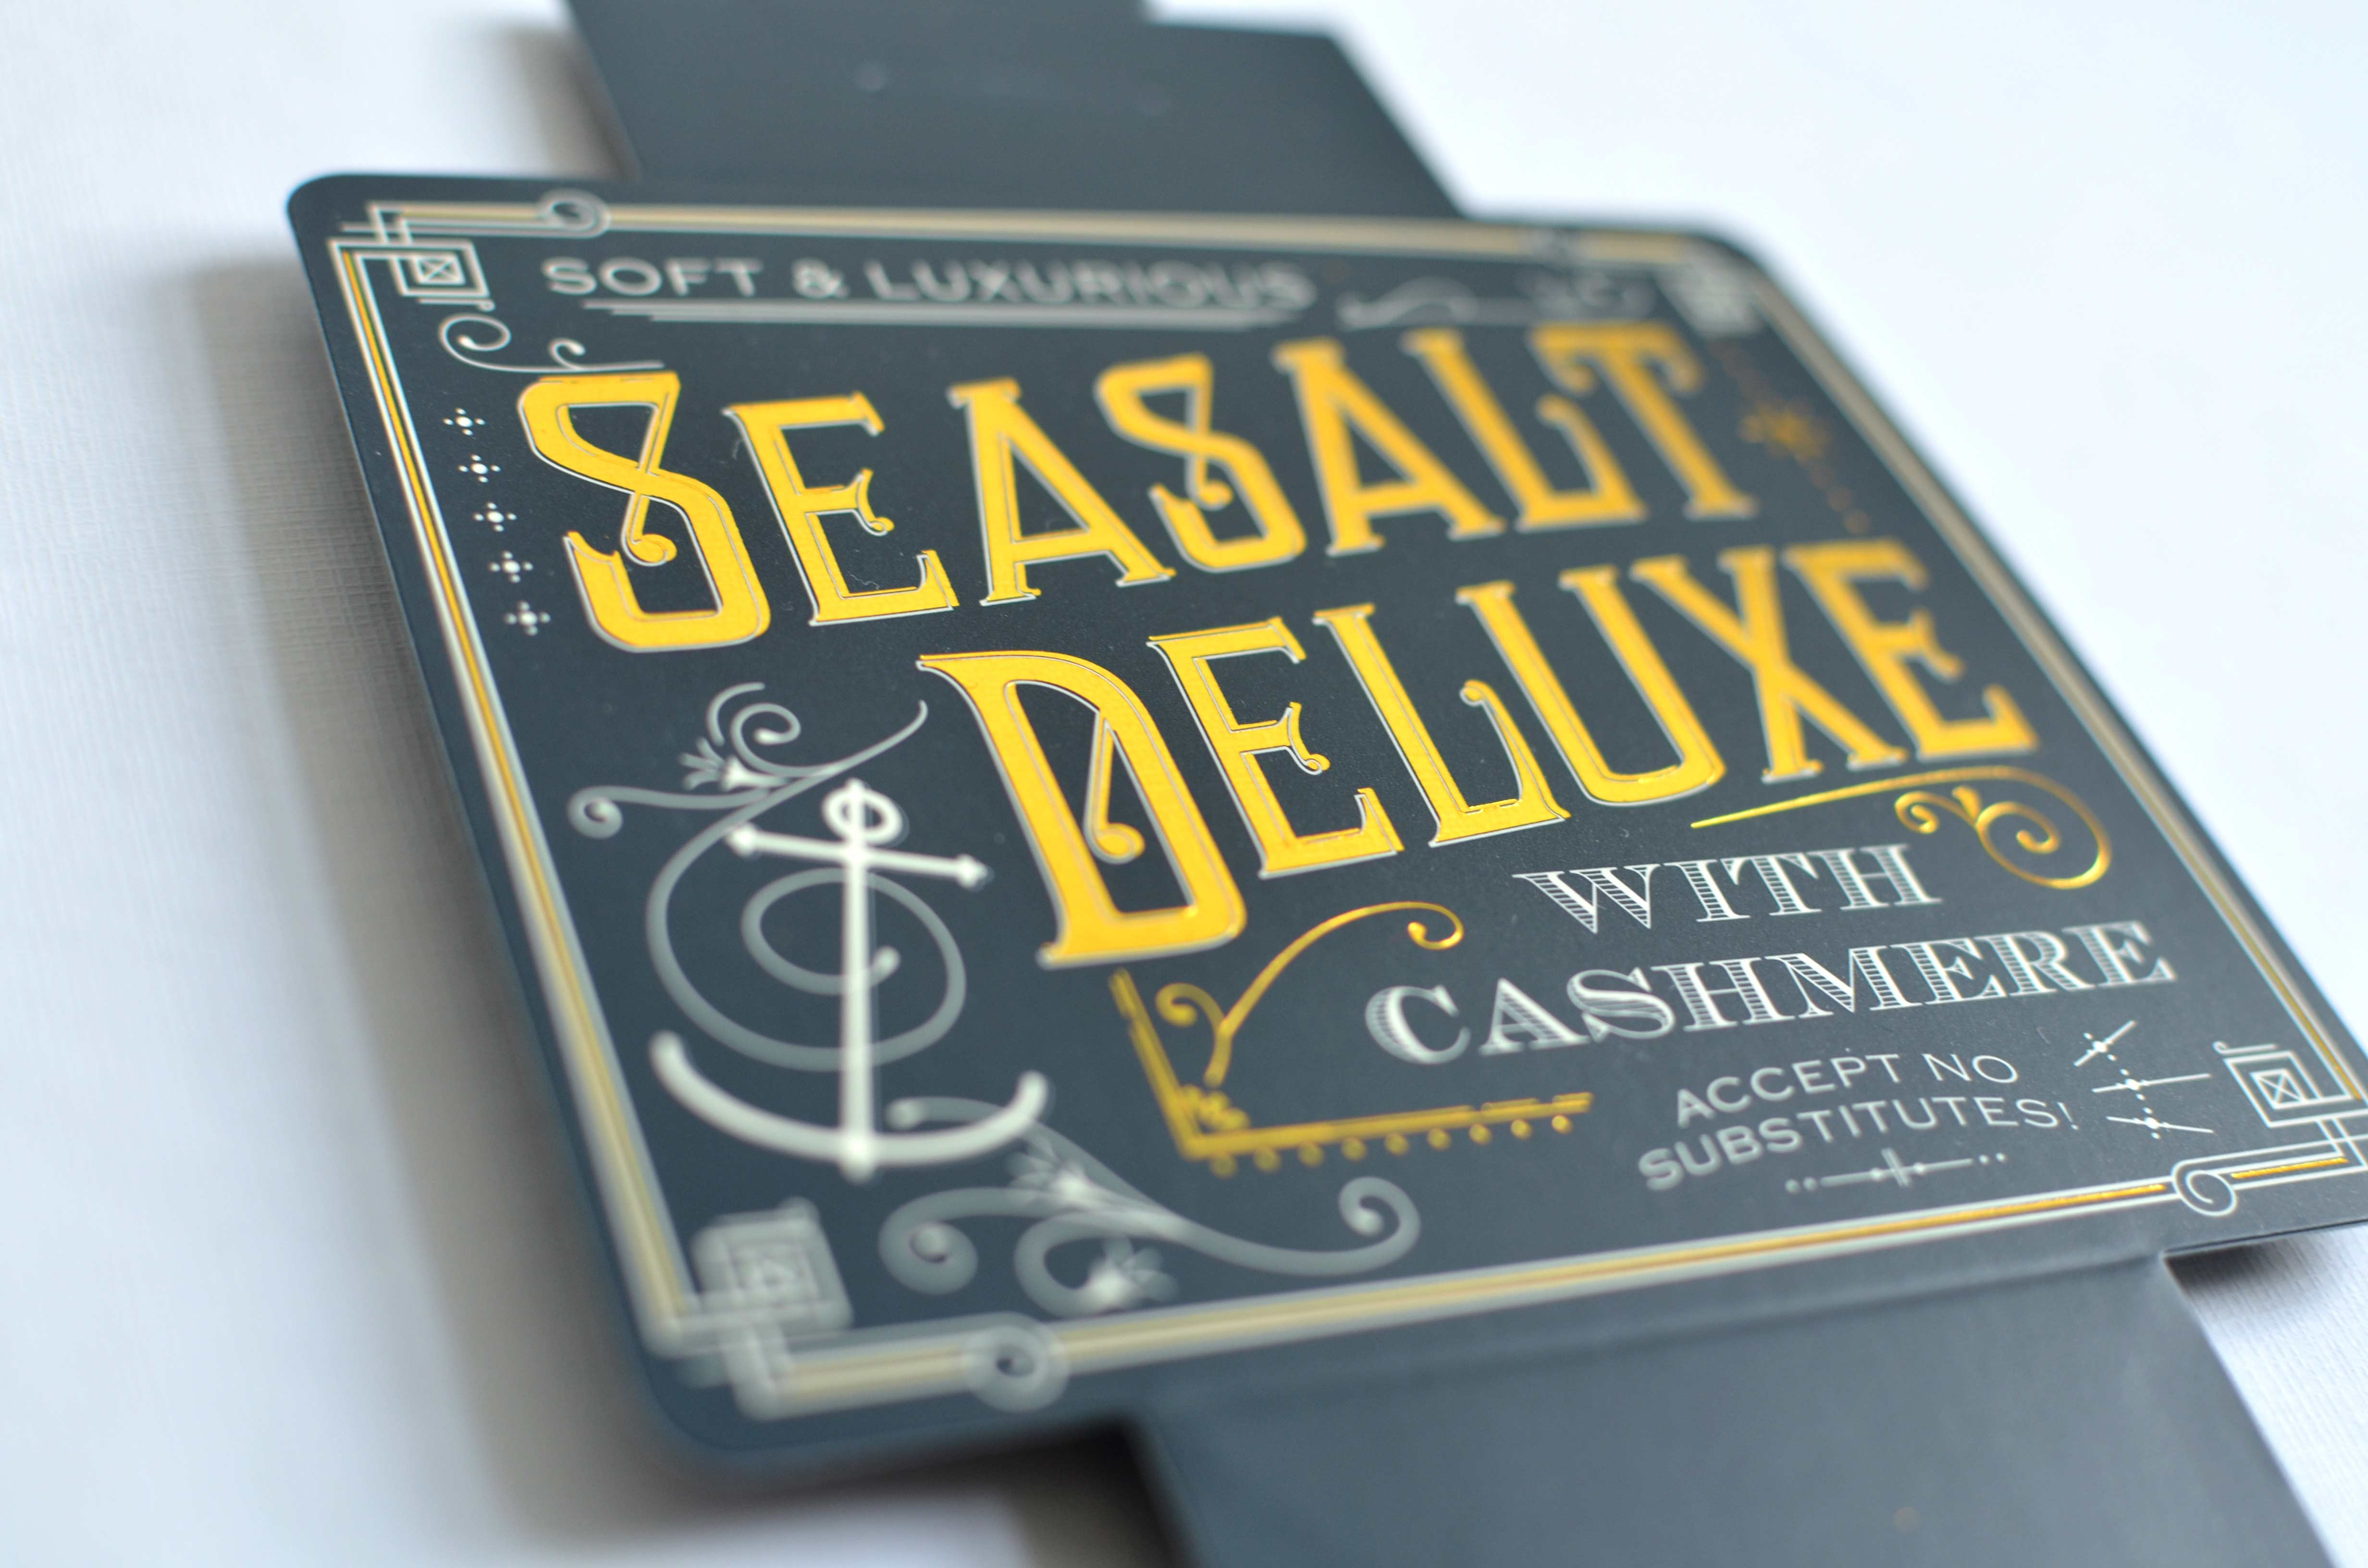 Uncoated, gold foil packaging for Seasalt Cornwall for their luxury range. By Elly Jahnz